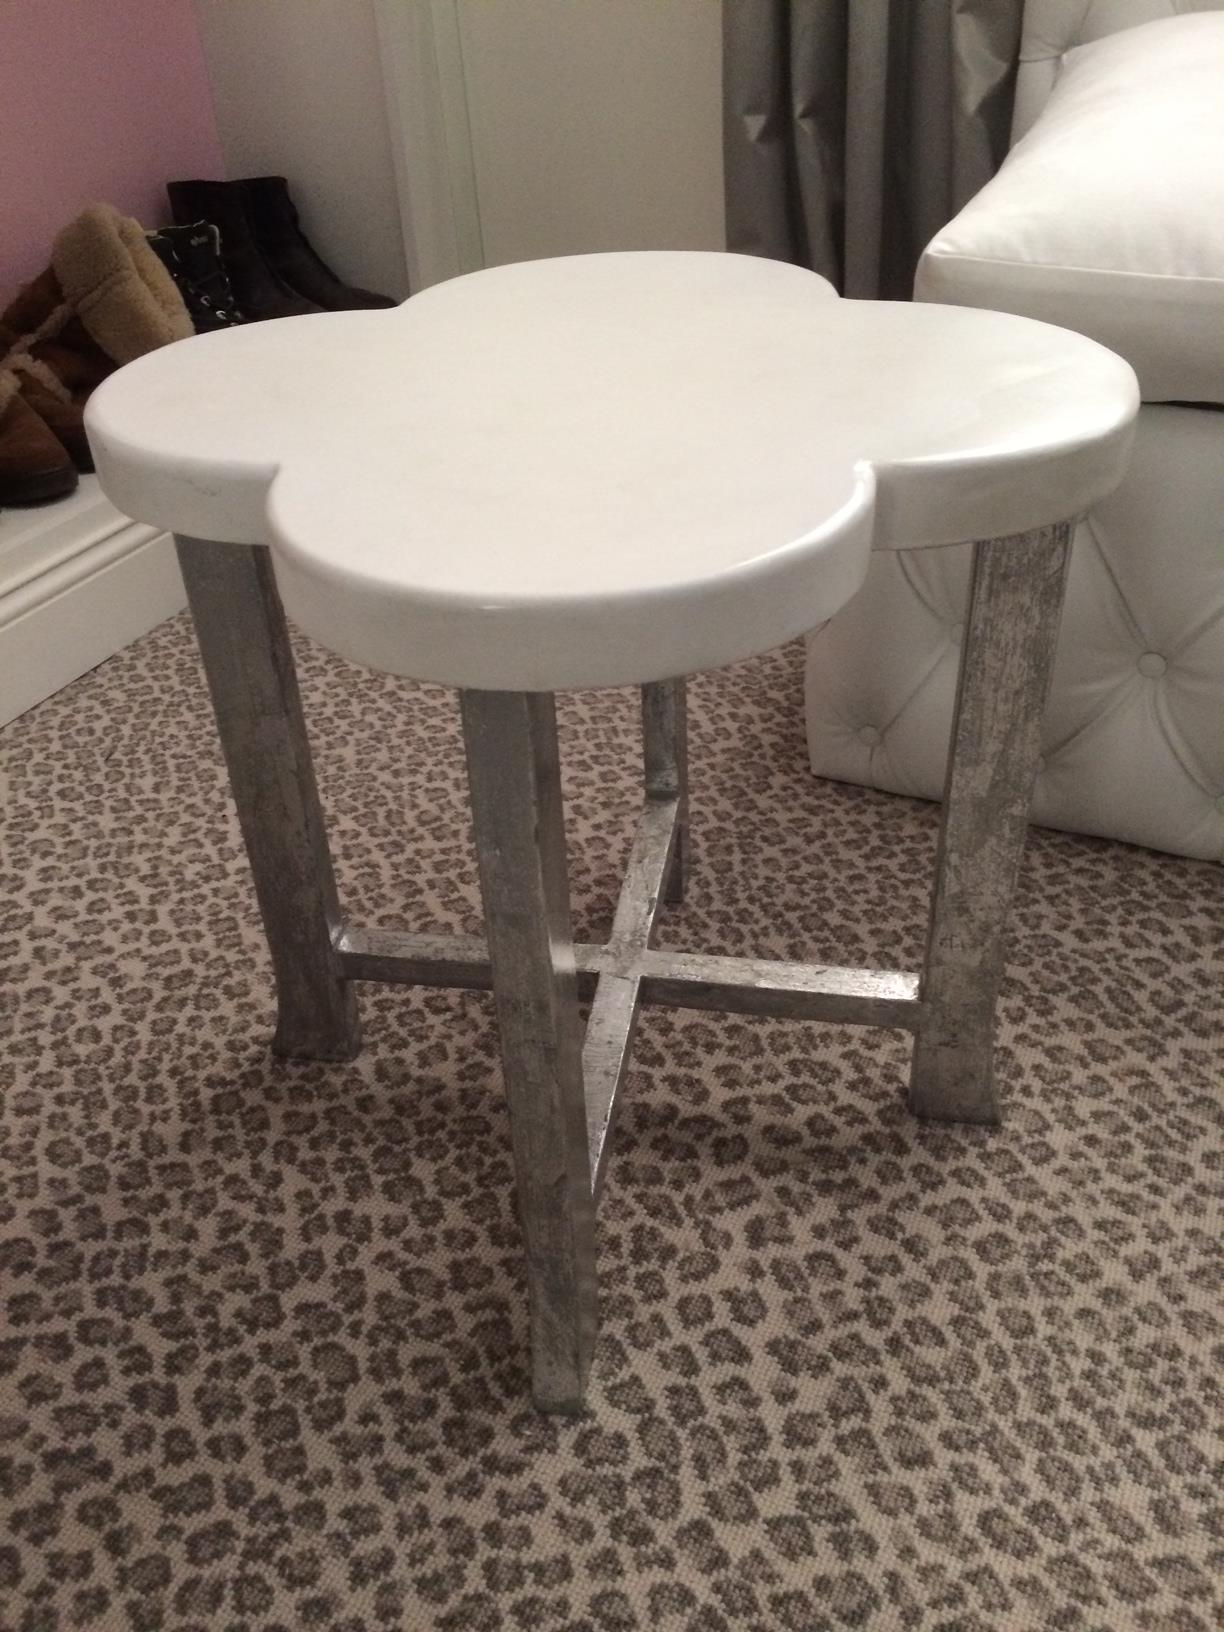 clover concrete and metal side table